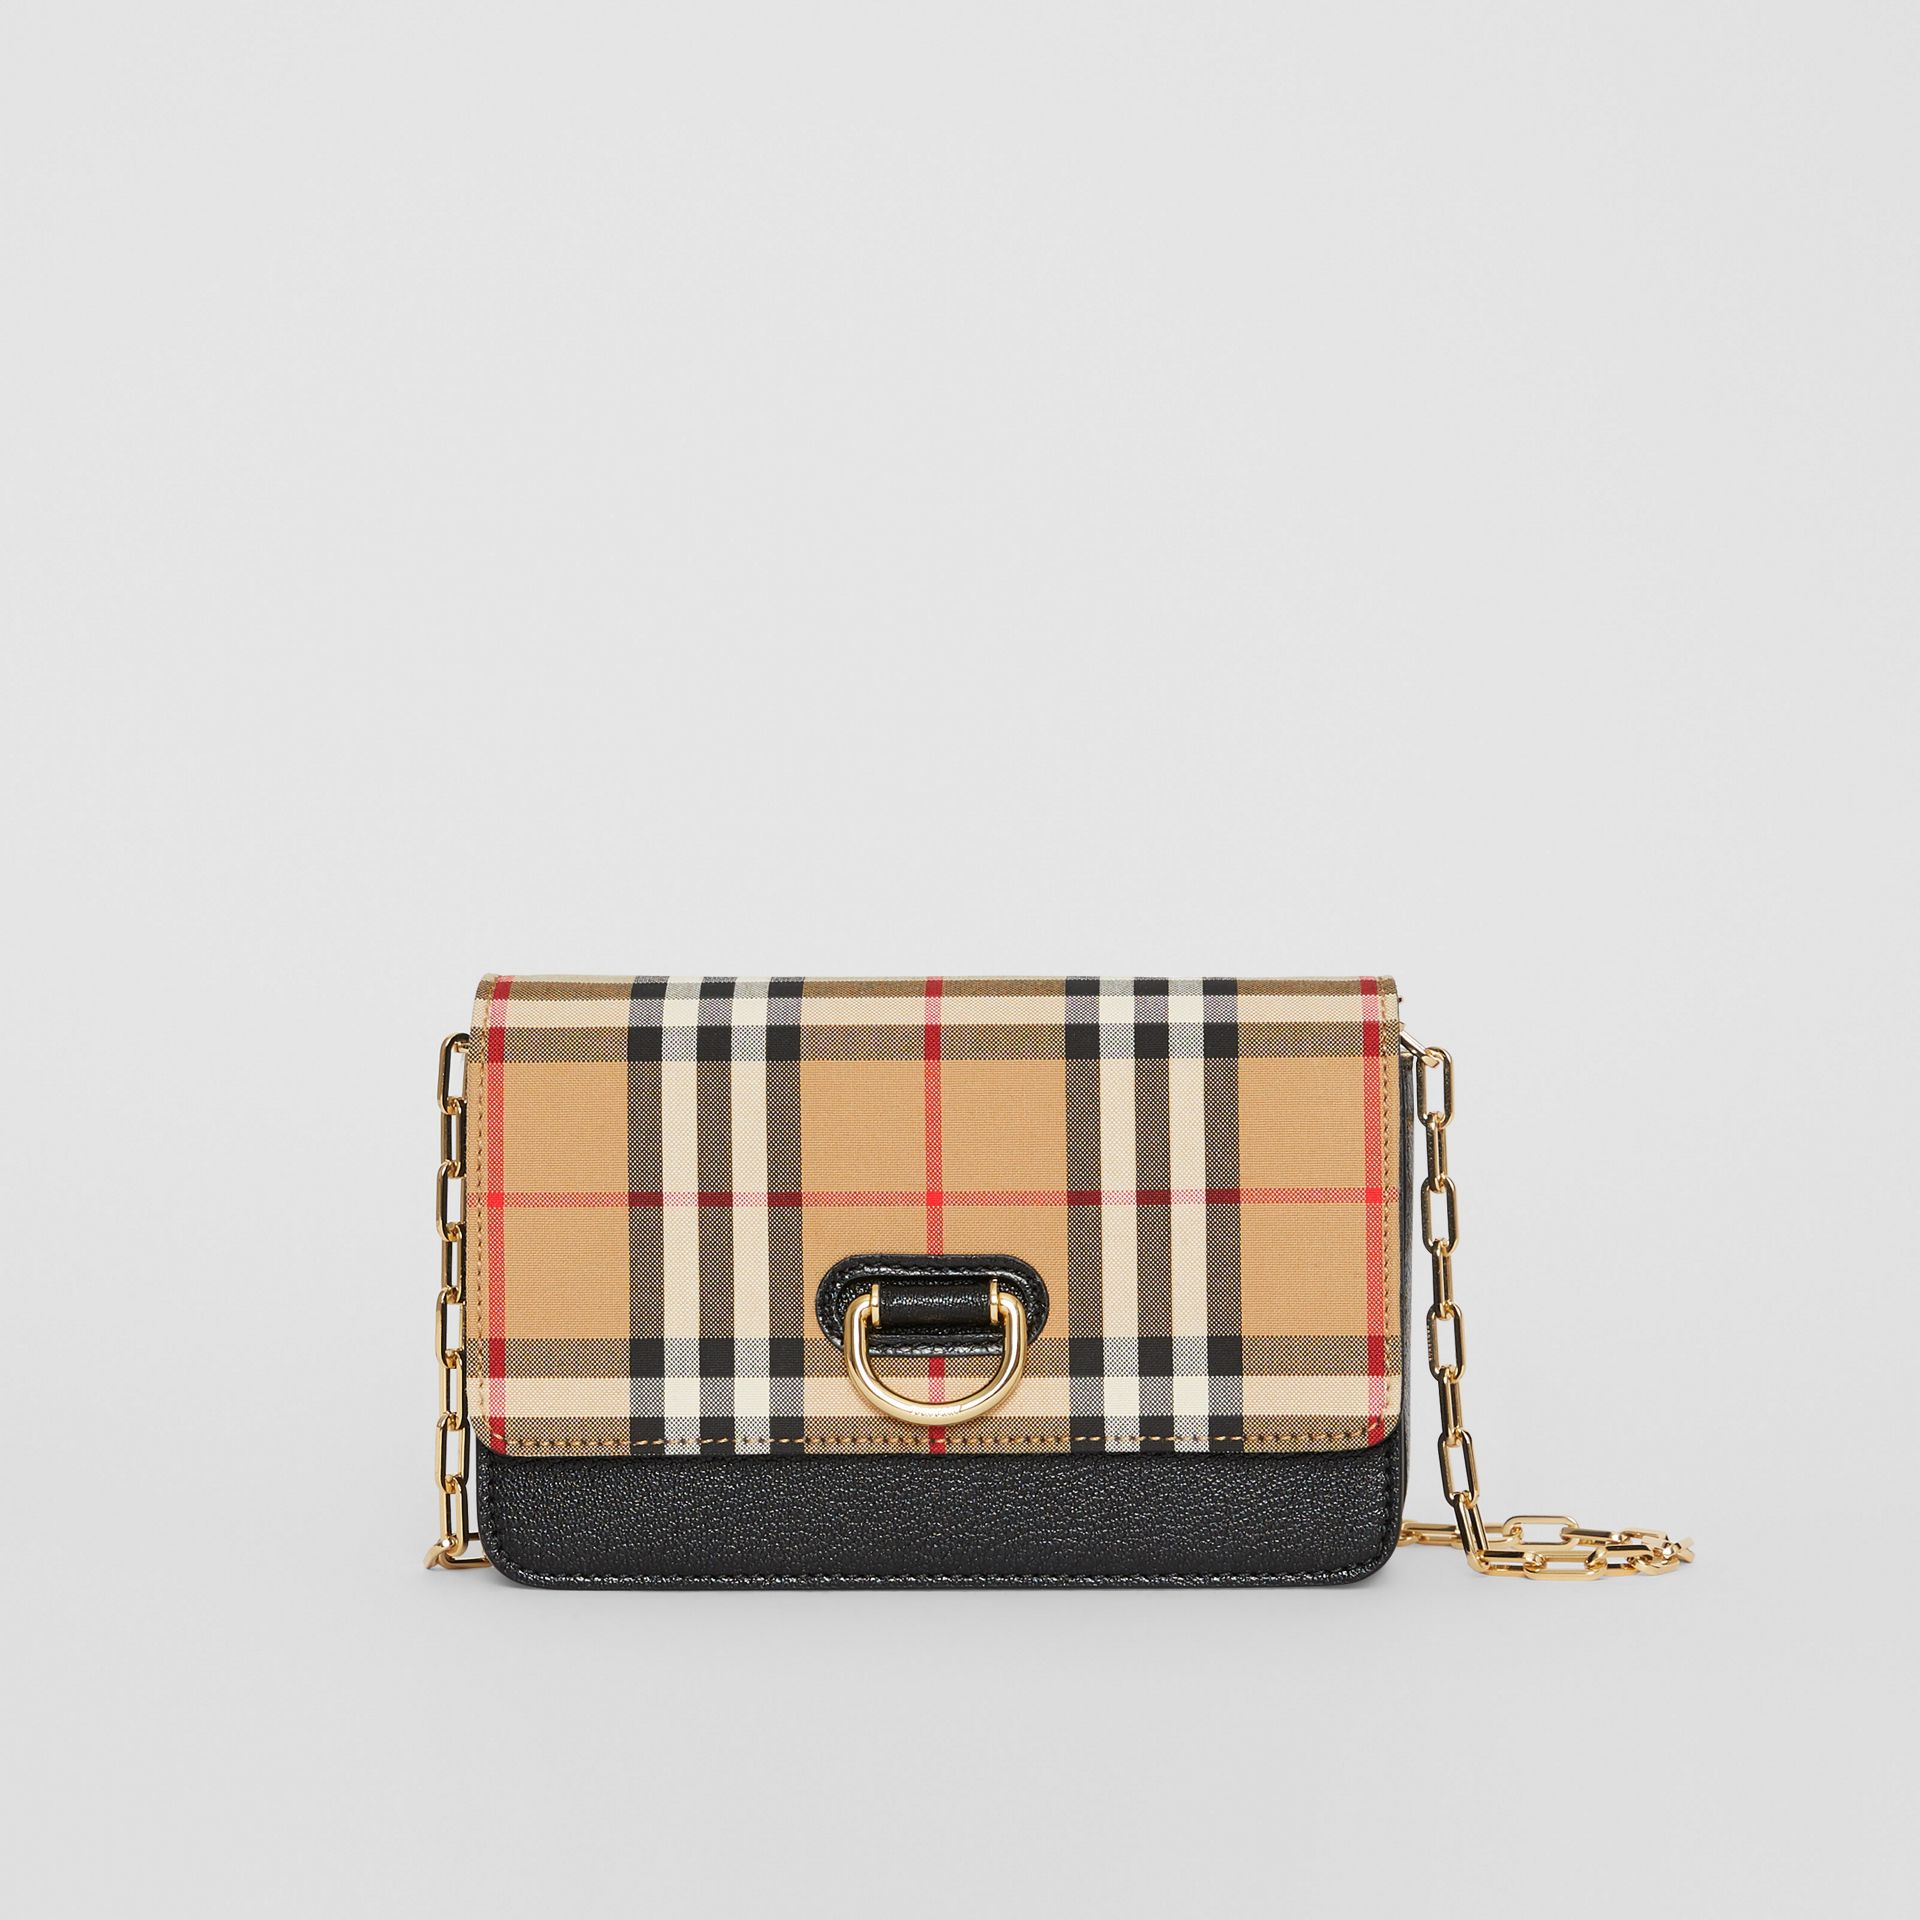 Mini sac The D-ring en cuir et Vintage check (Noir) - Femme | Burberry - photo de la galerie 0